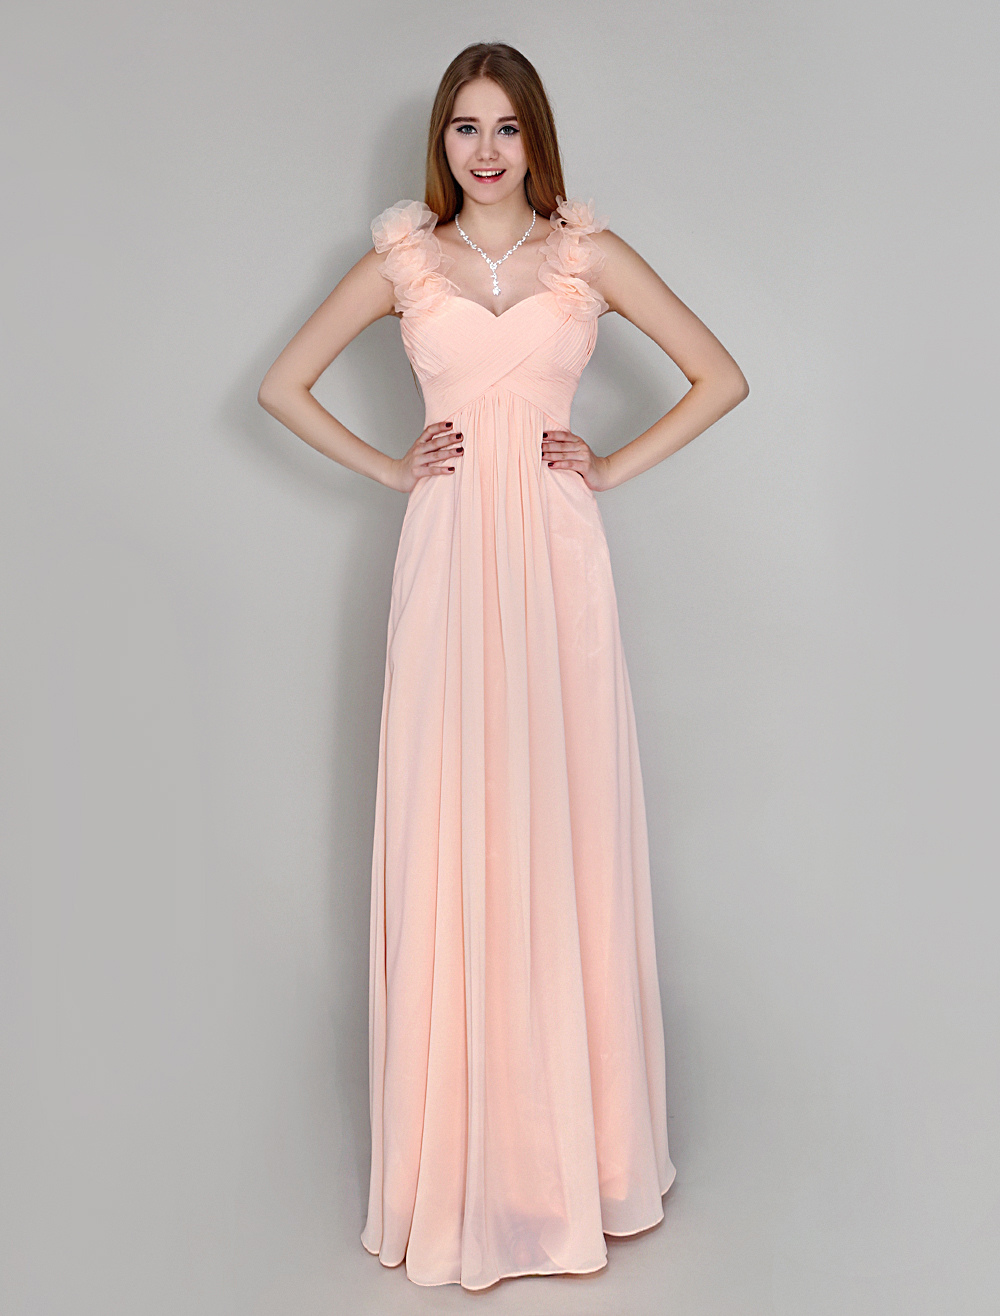 Blush Pink Sweetheart Neck Pleated Chiffon Floor-Length Bridesmaid Dress With Flower On Shoulder